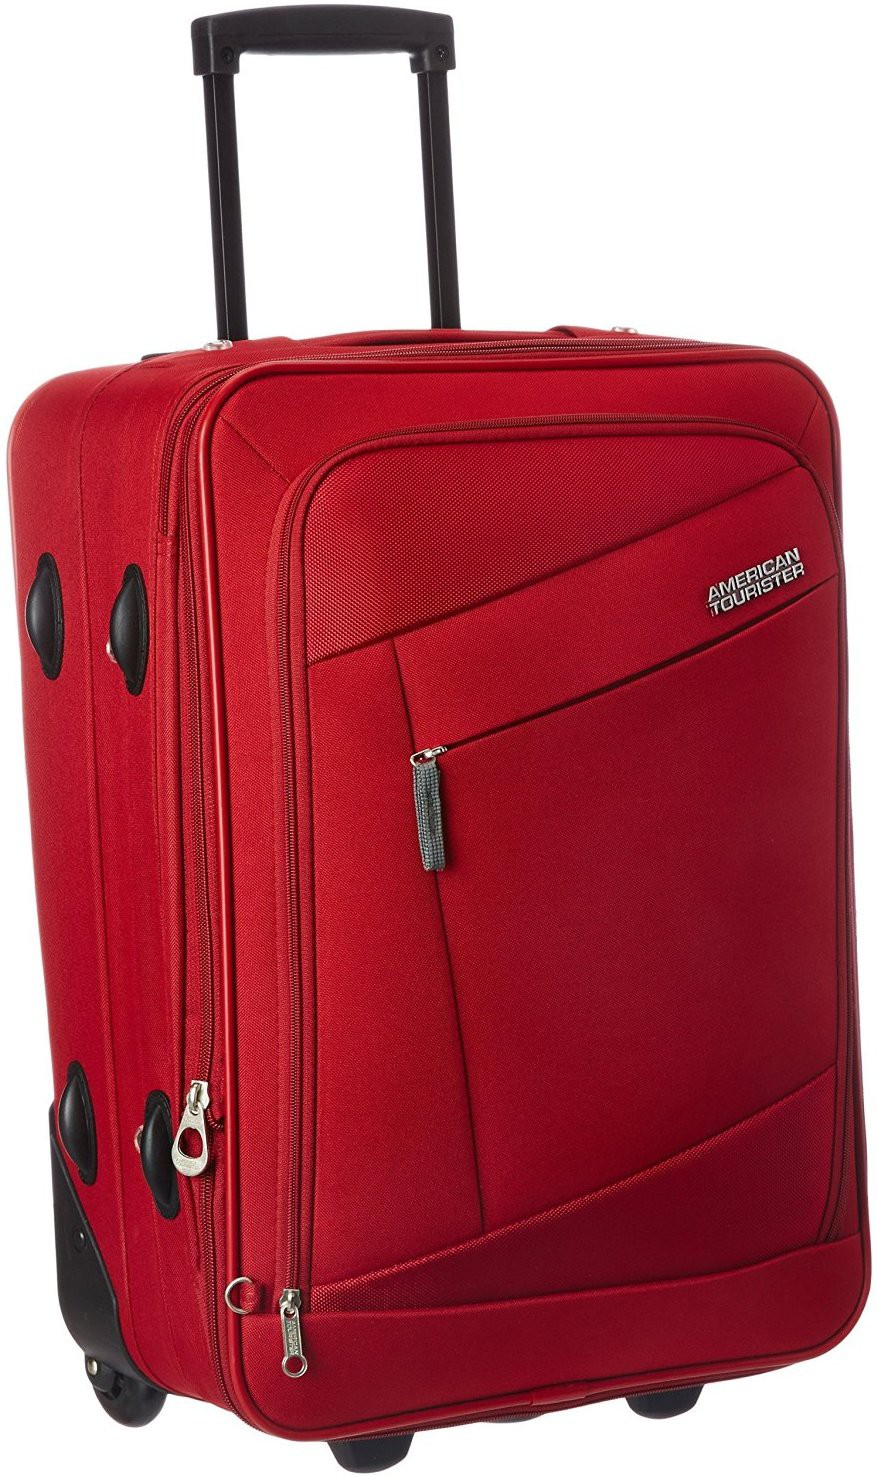 Deals | Minimum 40% Off American Tourister, VIP...